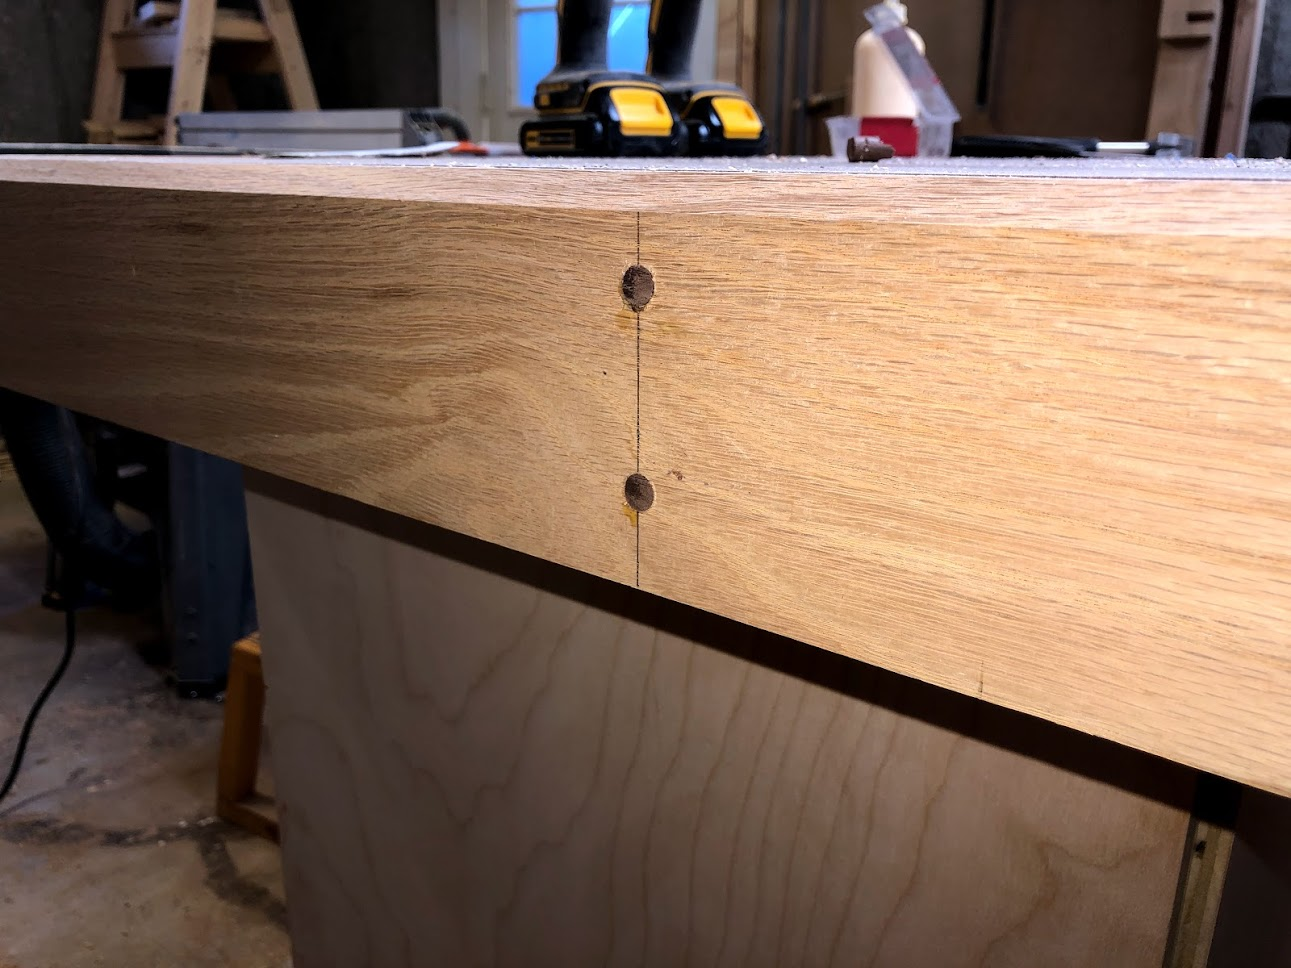 I trimmed the excess dowel, but still proud. Need to and them next